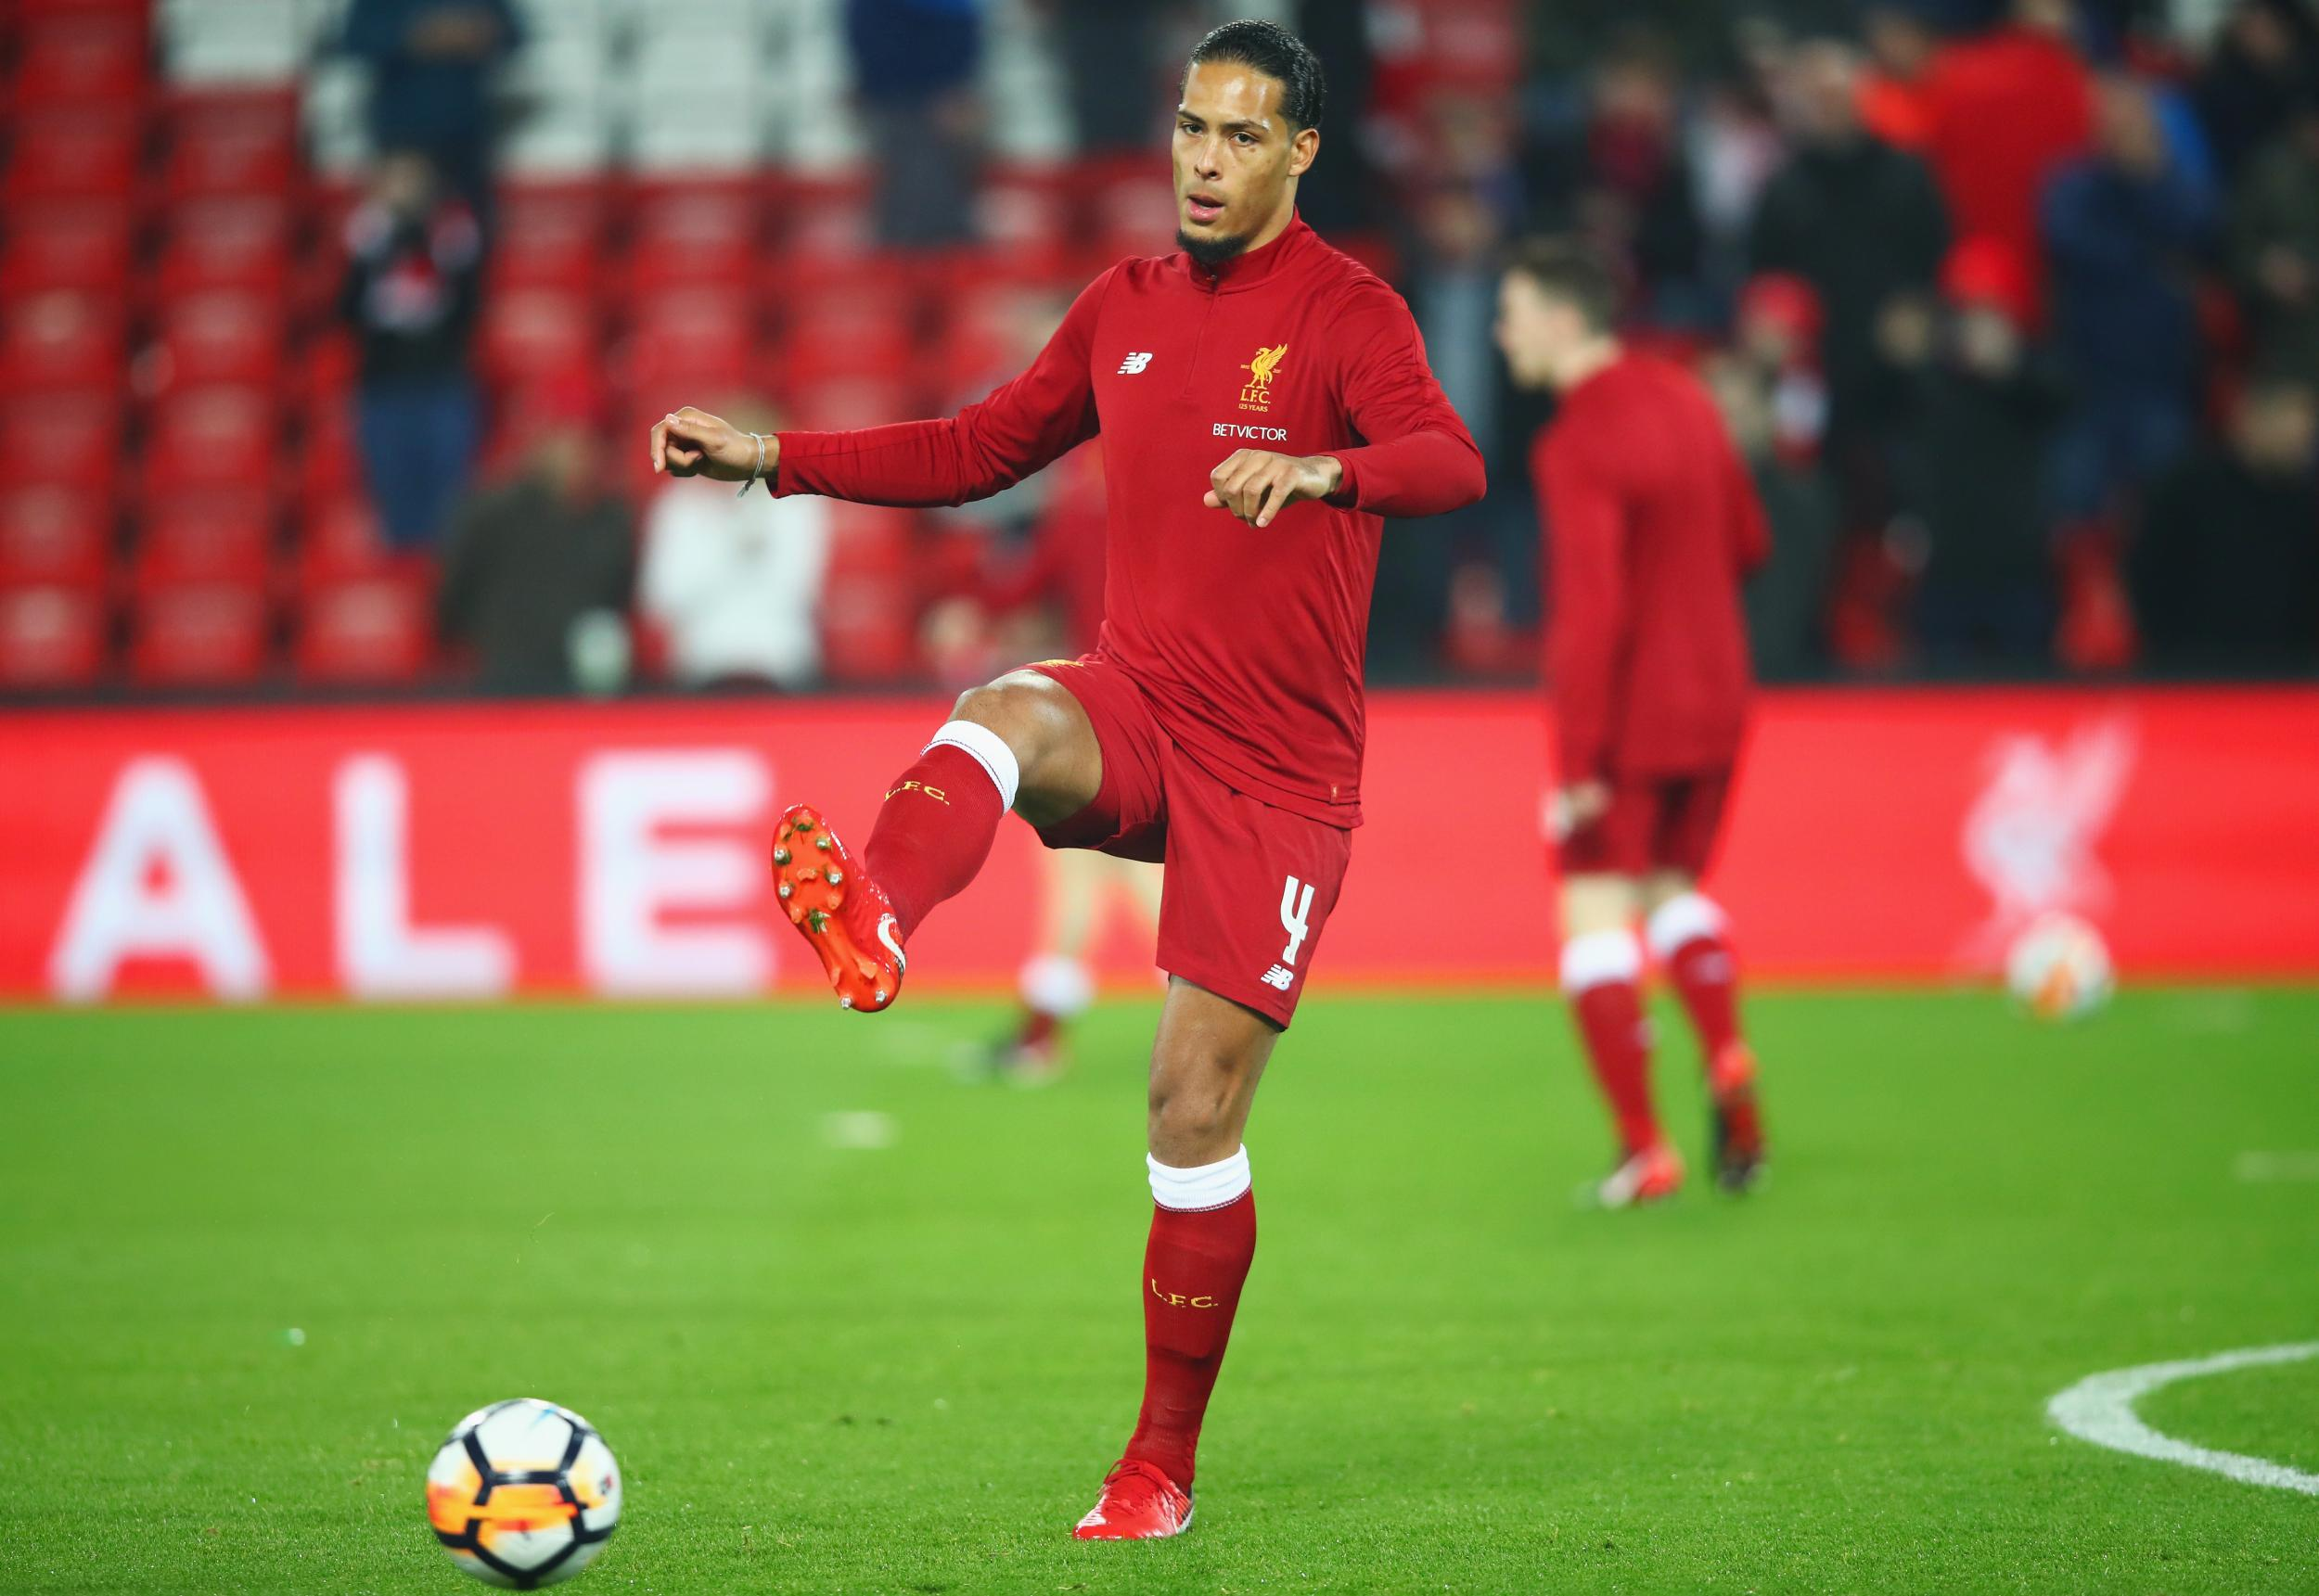 Chelsea Wanted To Sign Virgil Van Dijk But Liverpool Offered Too Much Reveals Antonio Conte